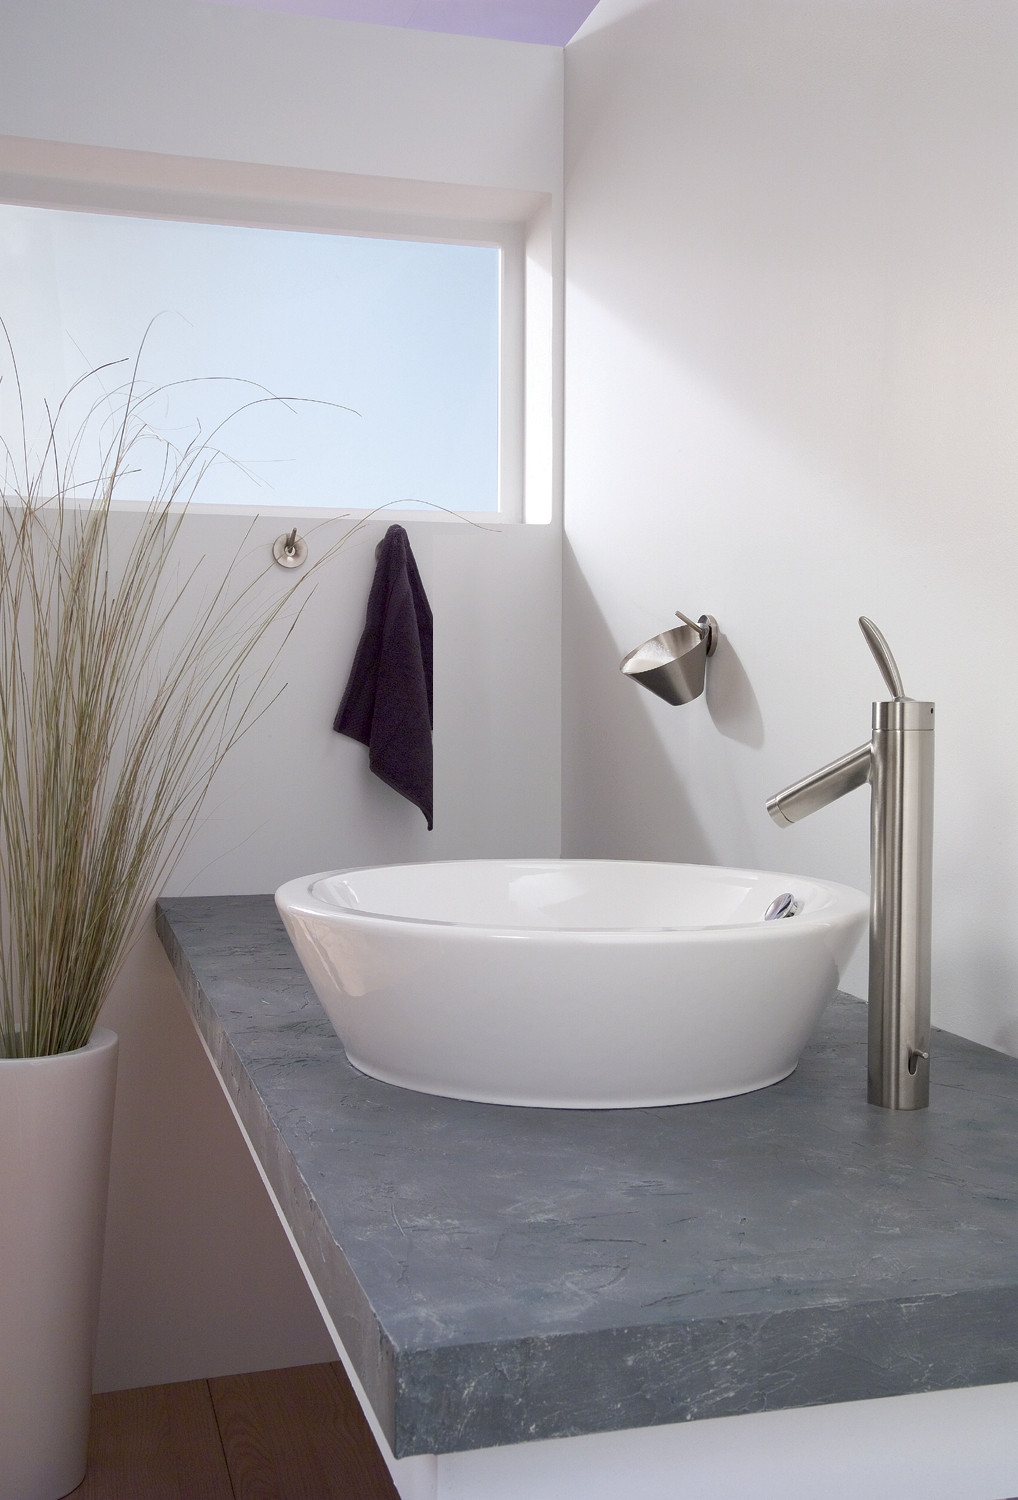 Bath4All - Hansgrohe 10020001 Chrome Axor Starck Vessel Bathroom ...